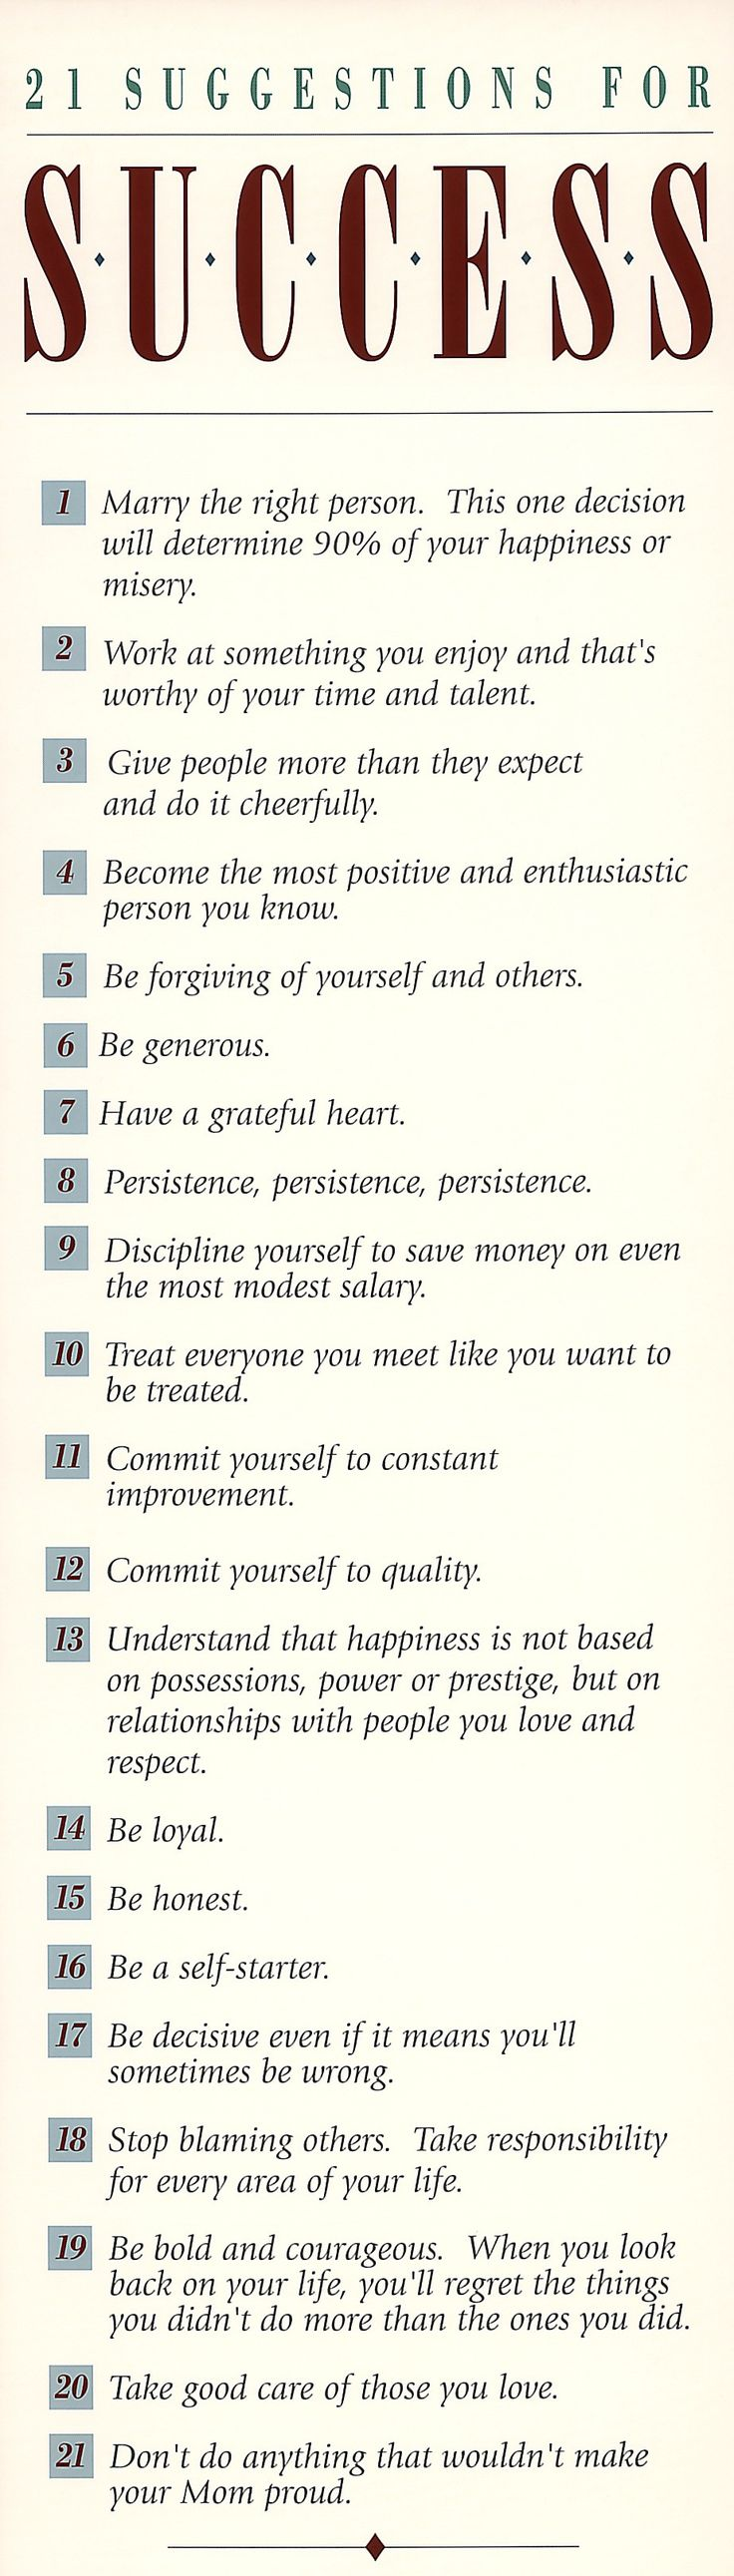 best ideas about definition of success john 21 suggestions for success